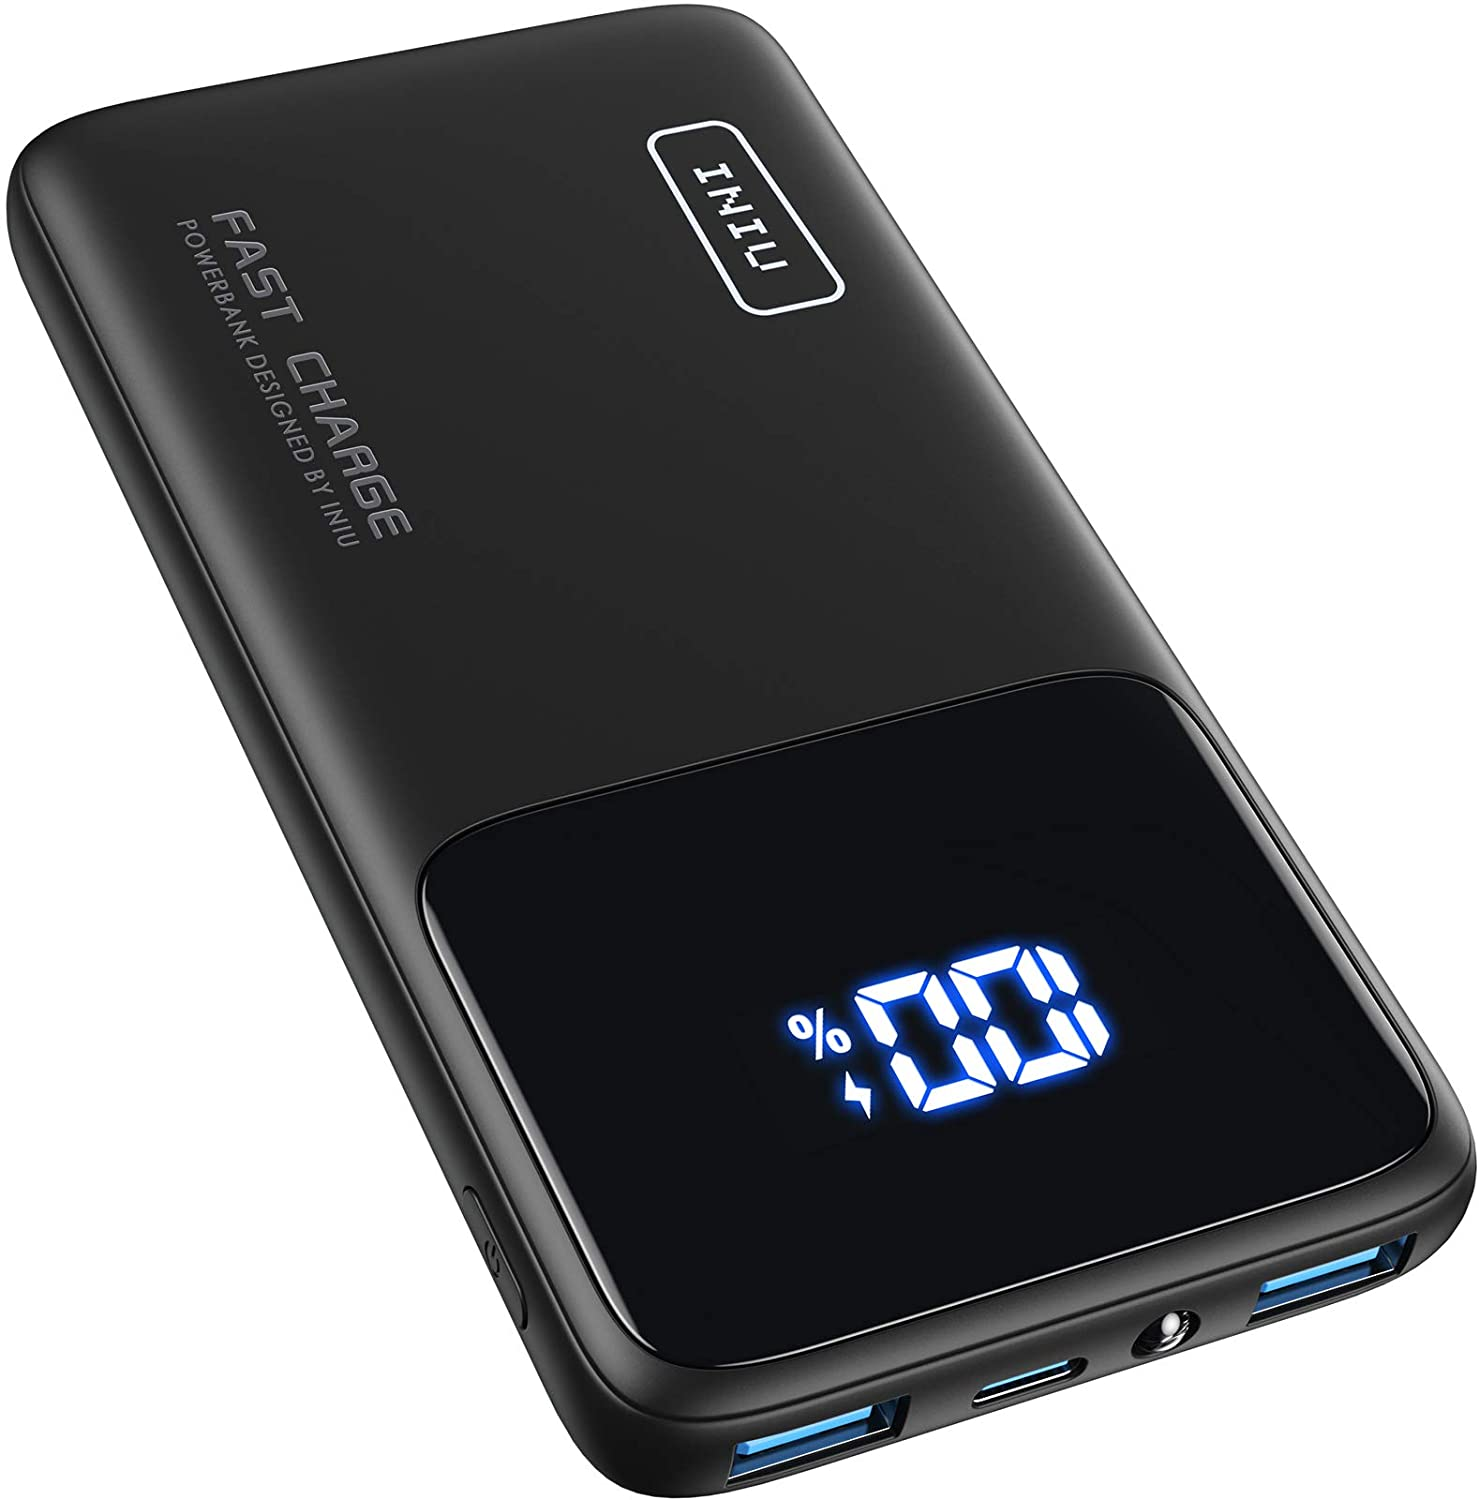 INIU Portable Charger, 18W PD3.0 USB C Fast Charge 10500mAh LED Display Power Bank, Battery Pack with Phone Holder & Flashlight Compatible with iPhone 12 11 XS 8 Samsung S20 Google AirPods iPad LG etc